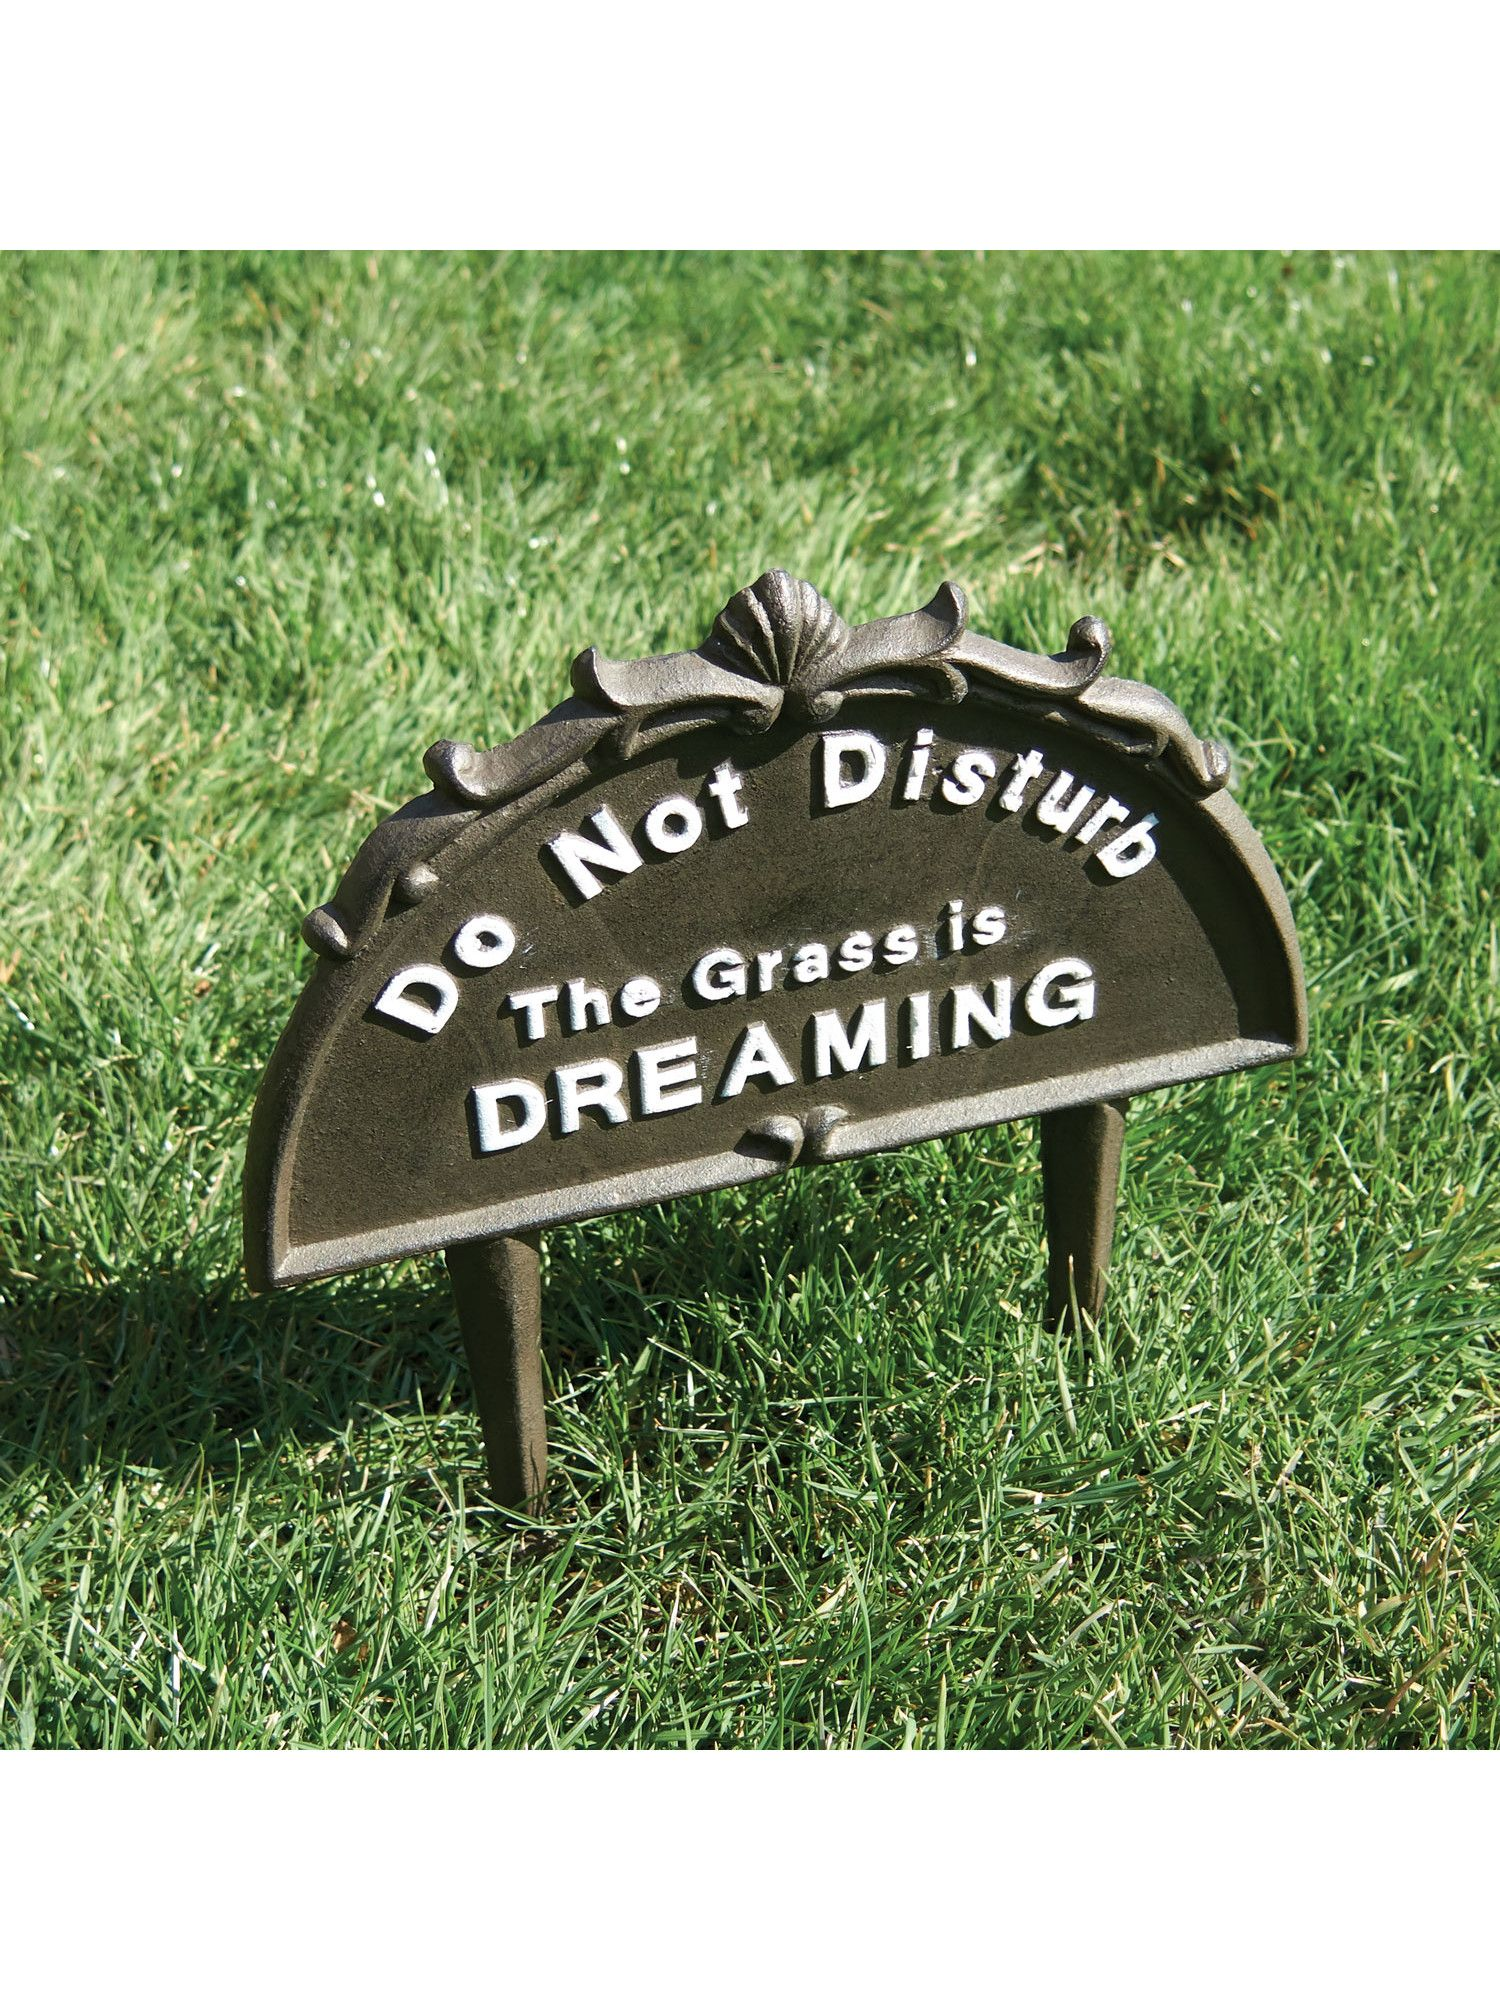 Do Not Disturb Lawn Sign Outdoor Cast Iron Yard Stake Walmart Com In 2021 Lawn Sign Outdoor Signs Lawn